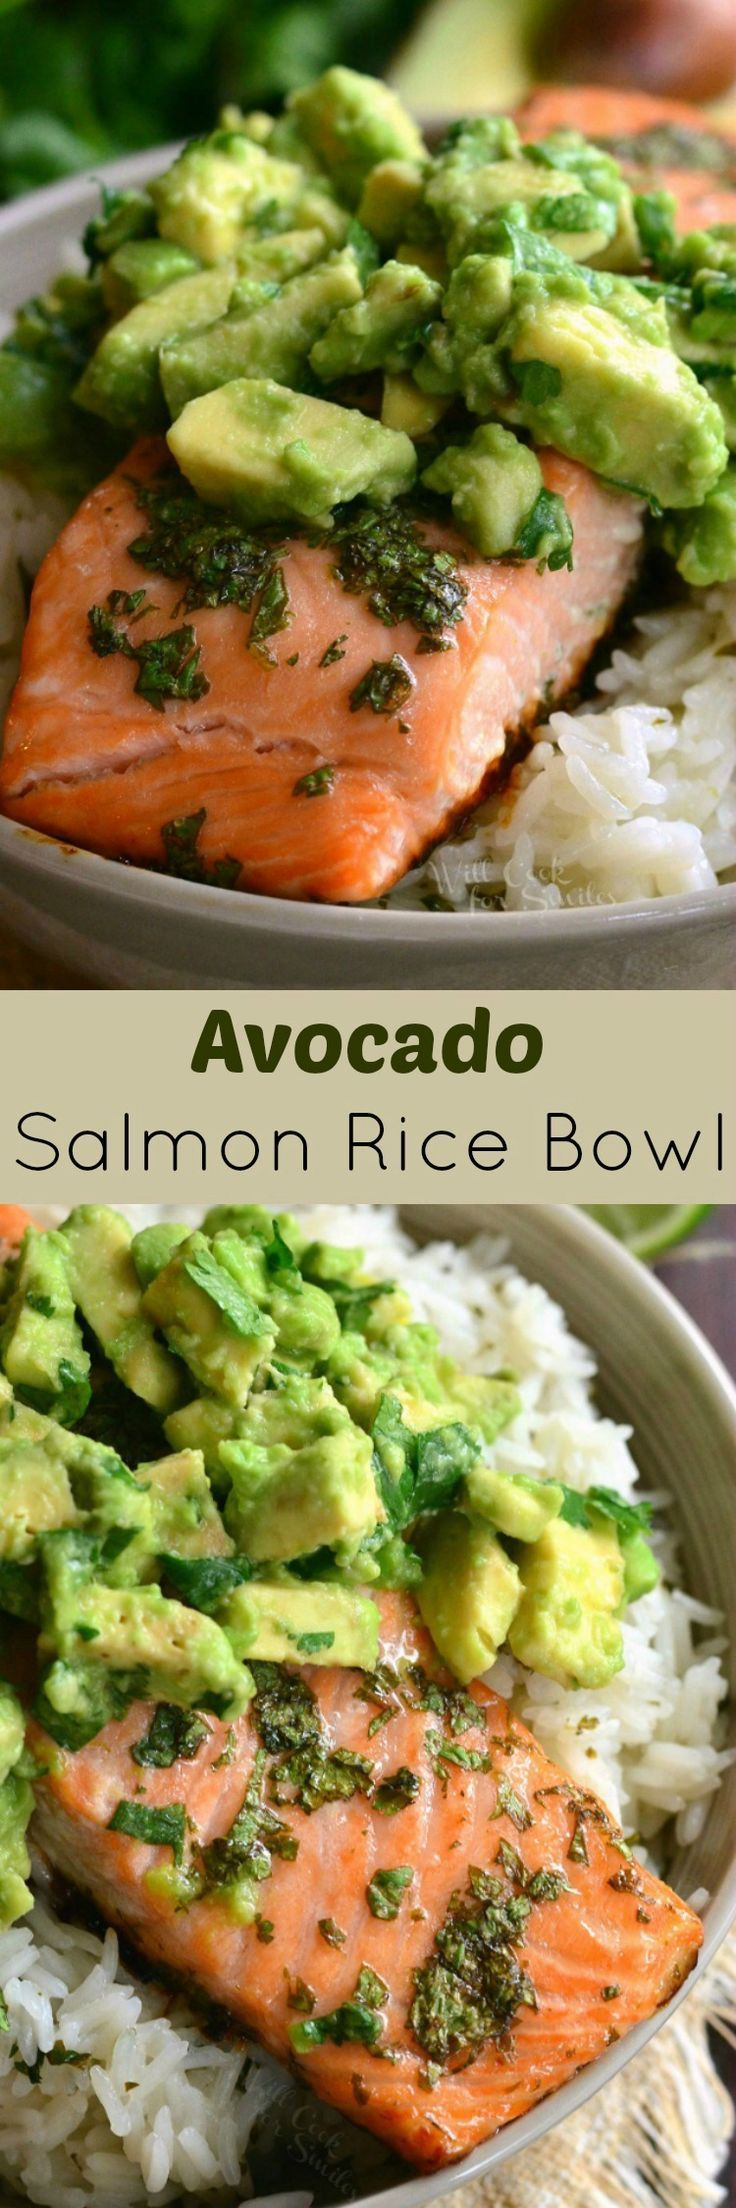 Avocado Salmon Rice Bowl. honey, lime, and cilantro